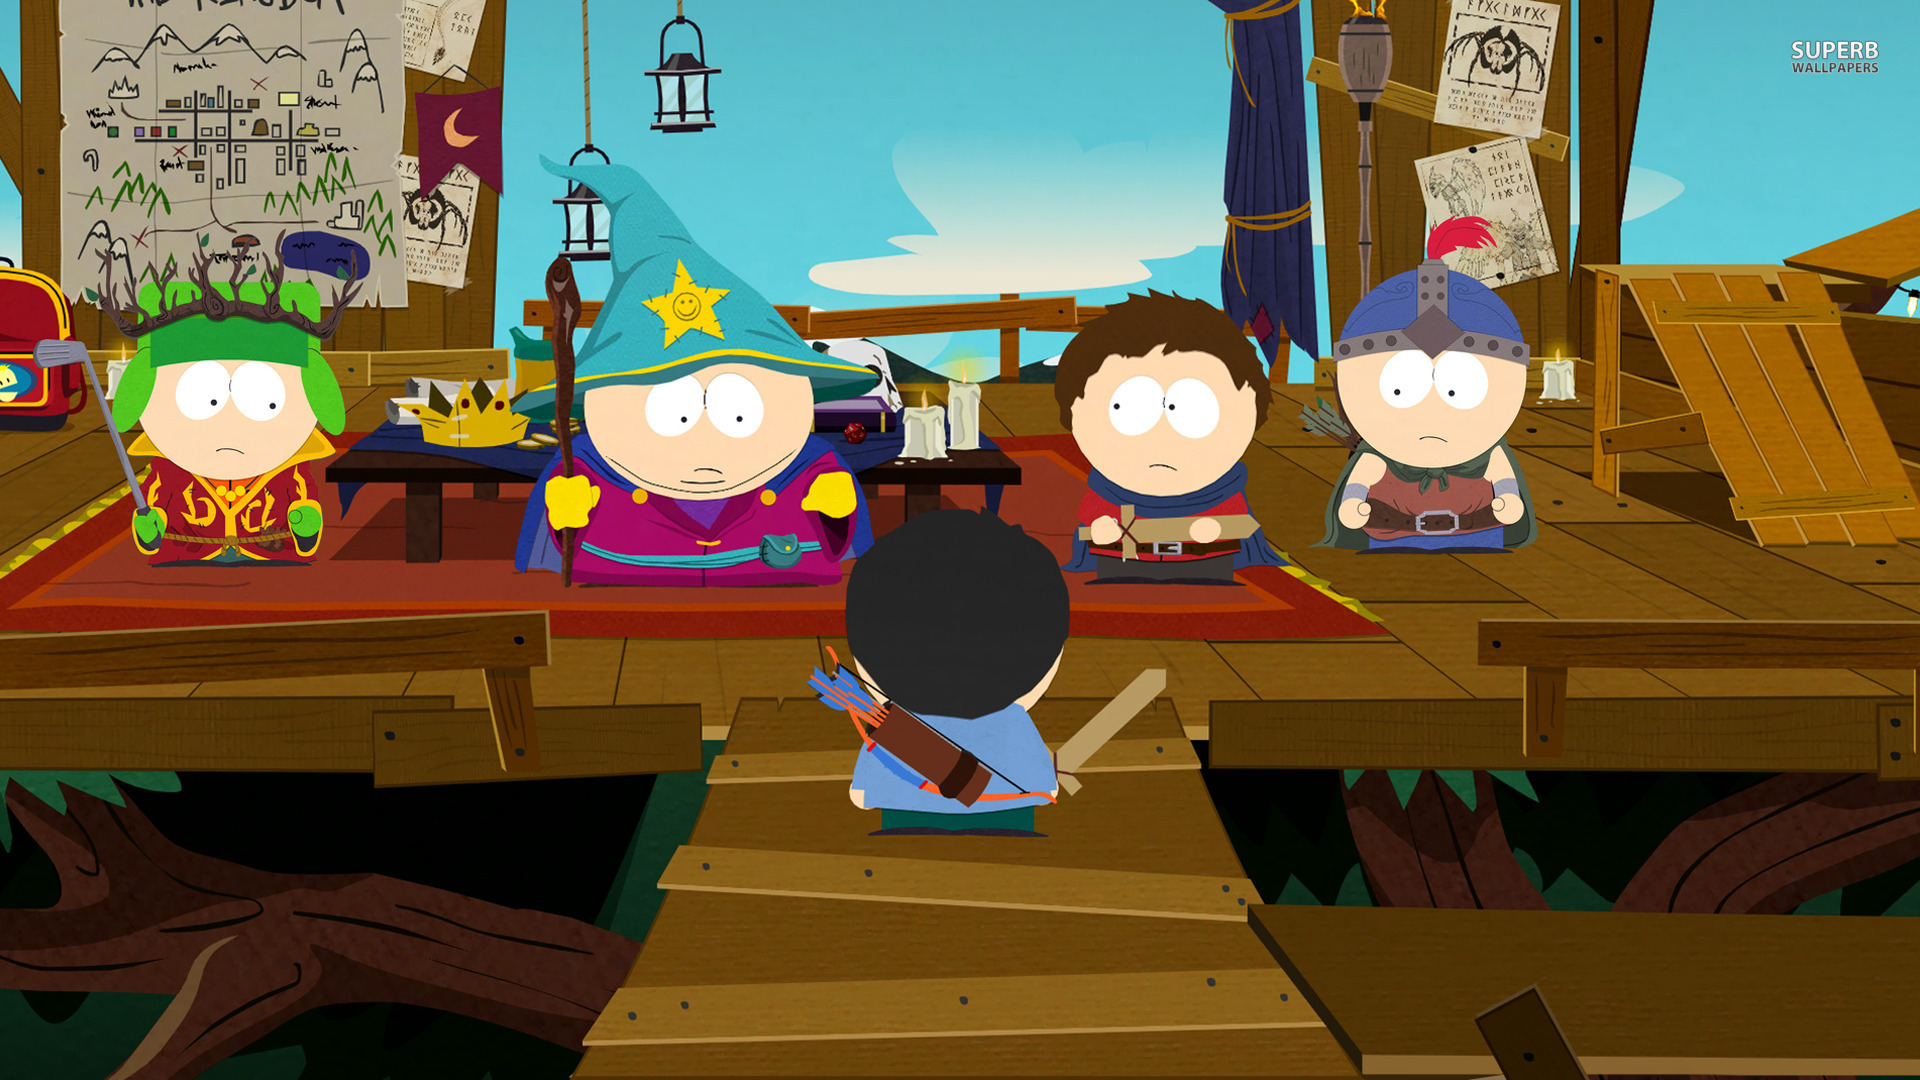 south park: the stick de truth review pcgamesarchive.com